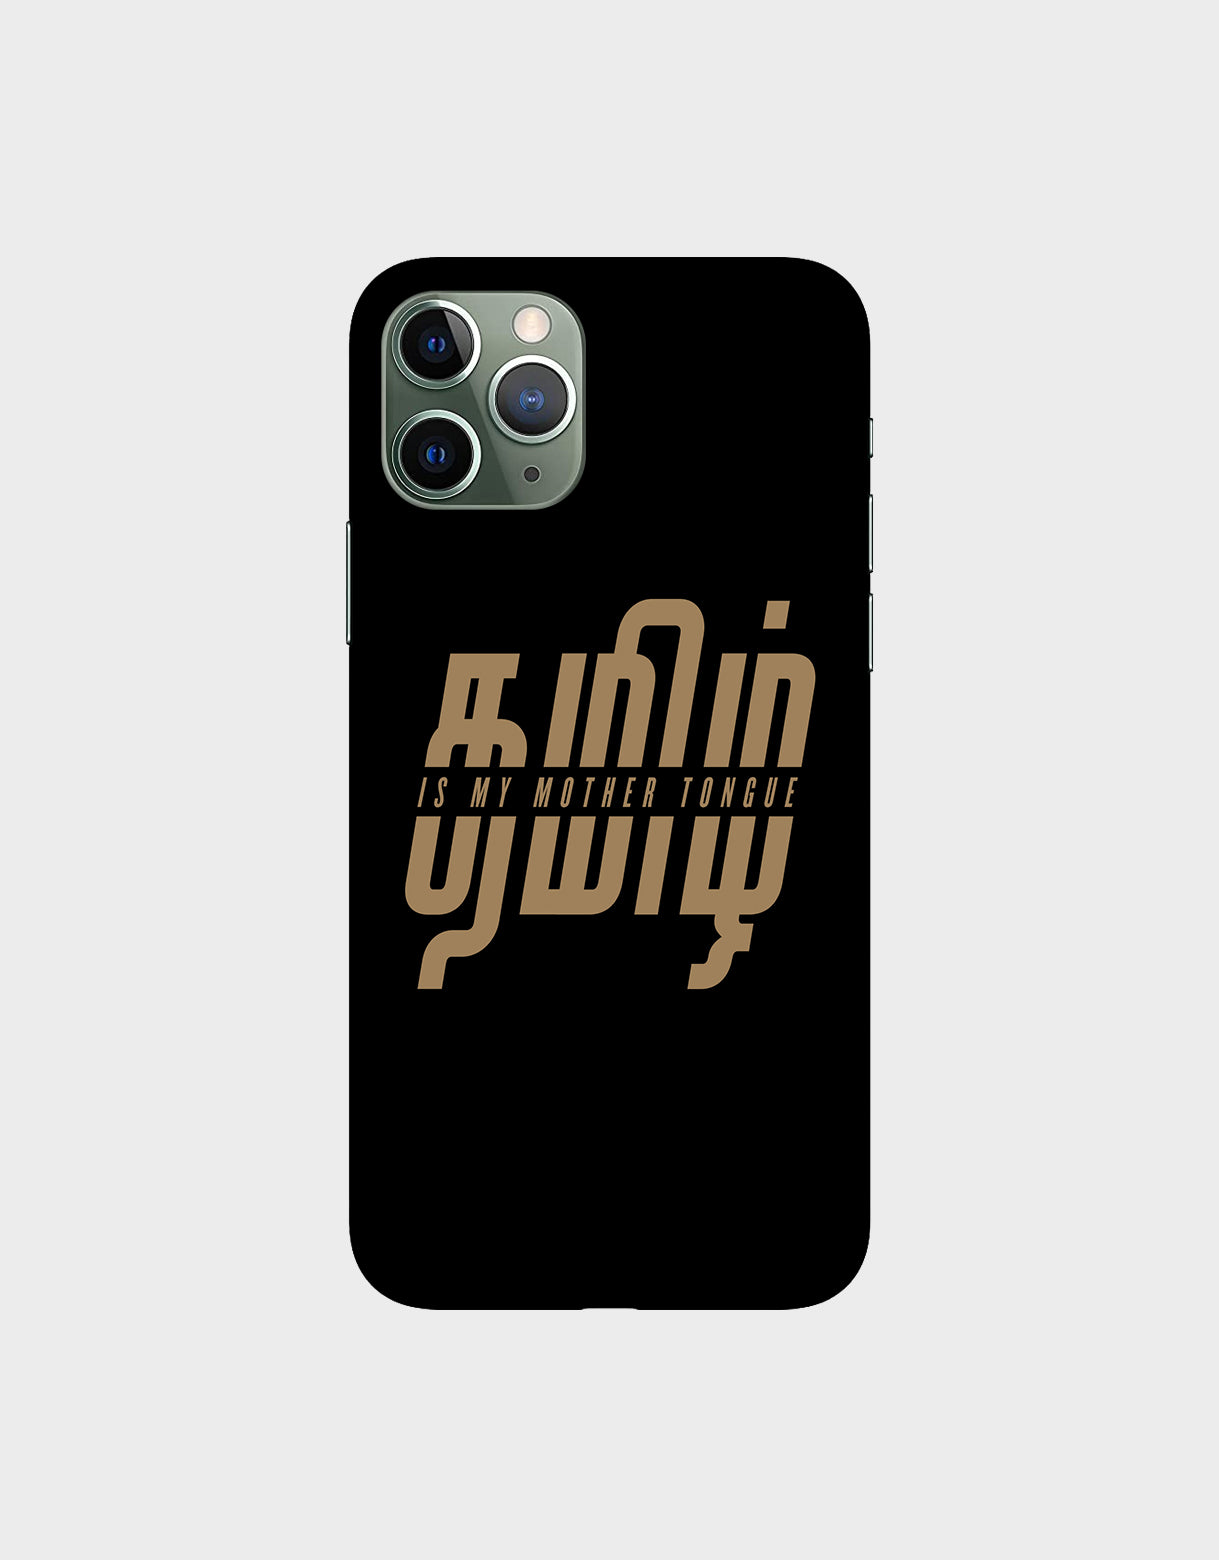 Tamil is my mother tonque -iPhone 11 Pro Mobile covers